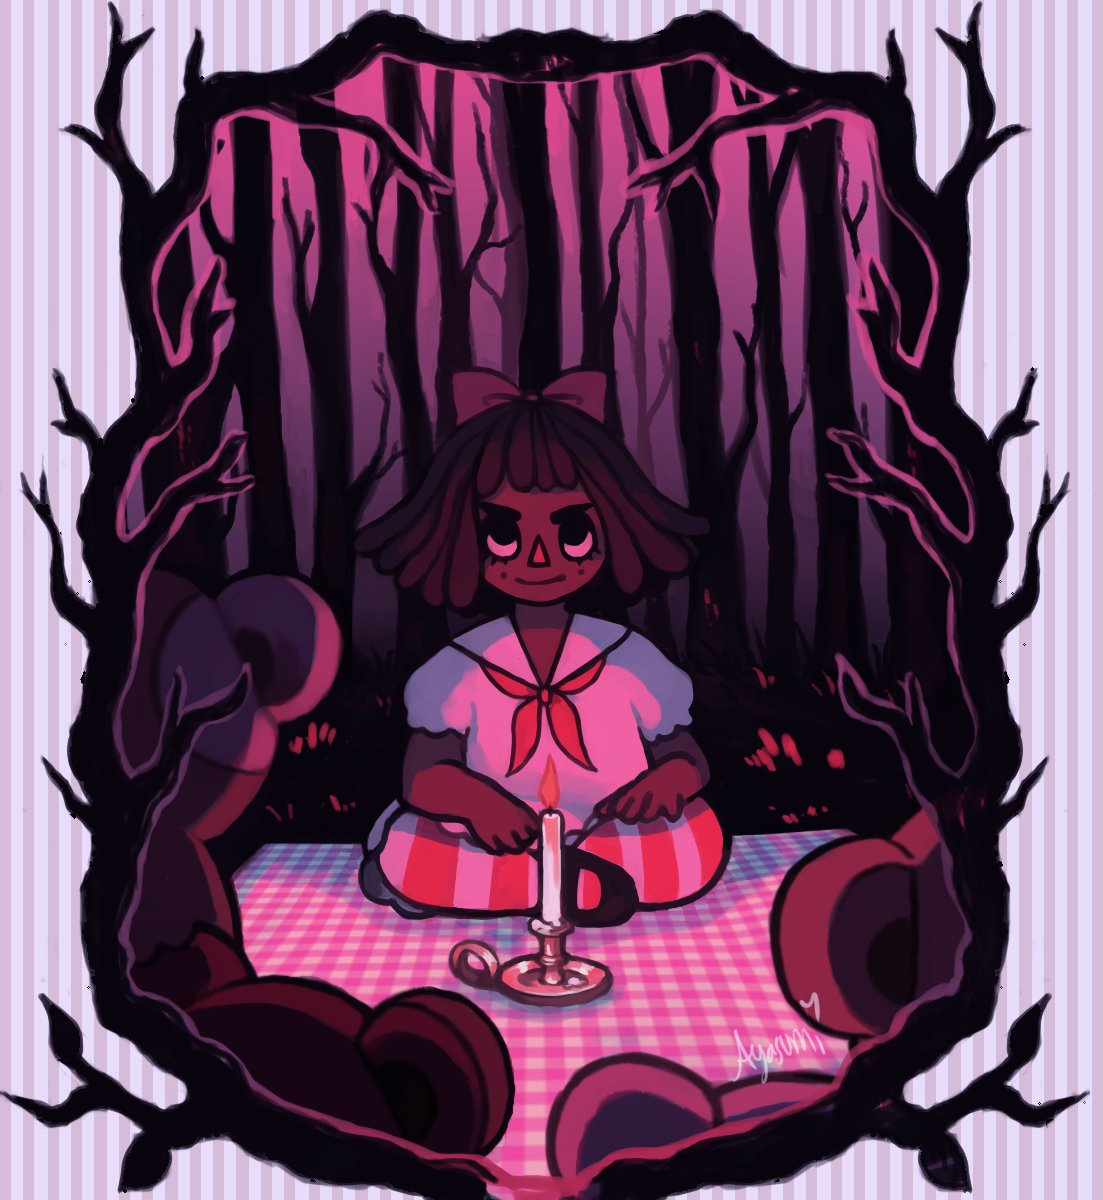 #VisibleWomen  Hi! My name is Aya! I&#39;m a 20-year-old lesbian from the UK currently going into my second year of studying animation. I love all things cute and a tiny bit sinister. &gt;:^) <br>http://pic.twitter.com/MAqWMcZTSY